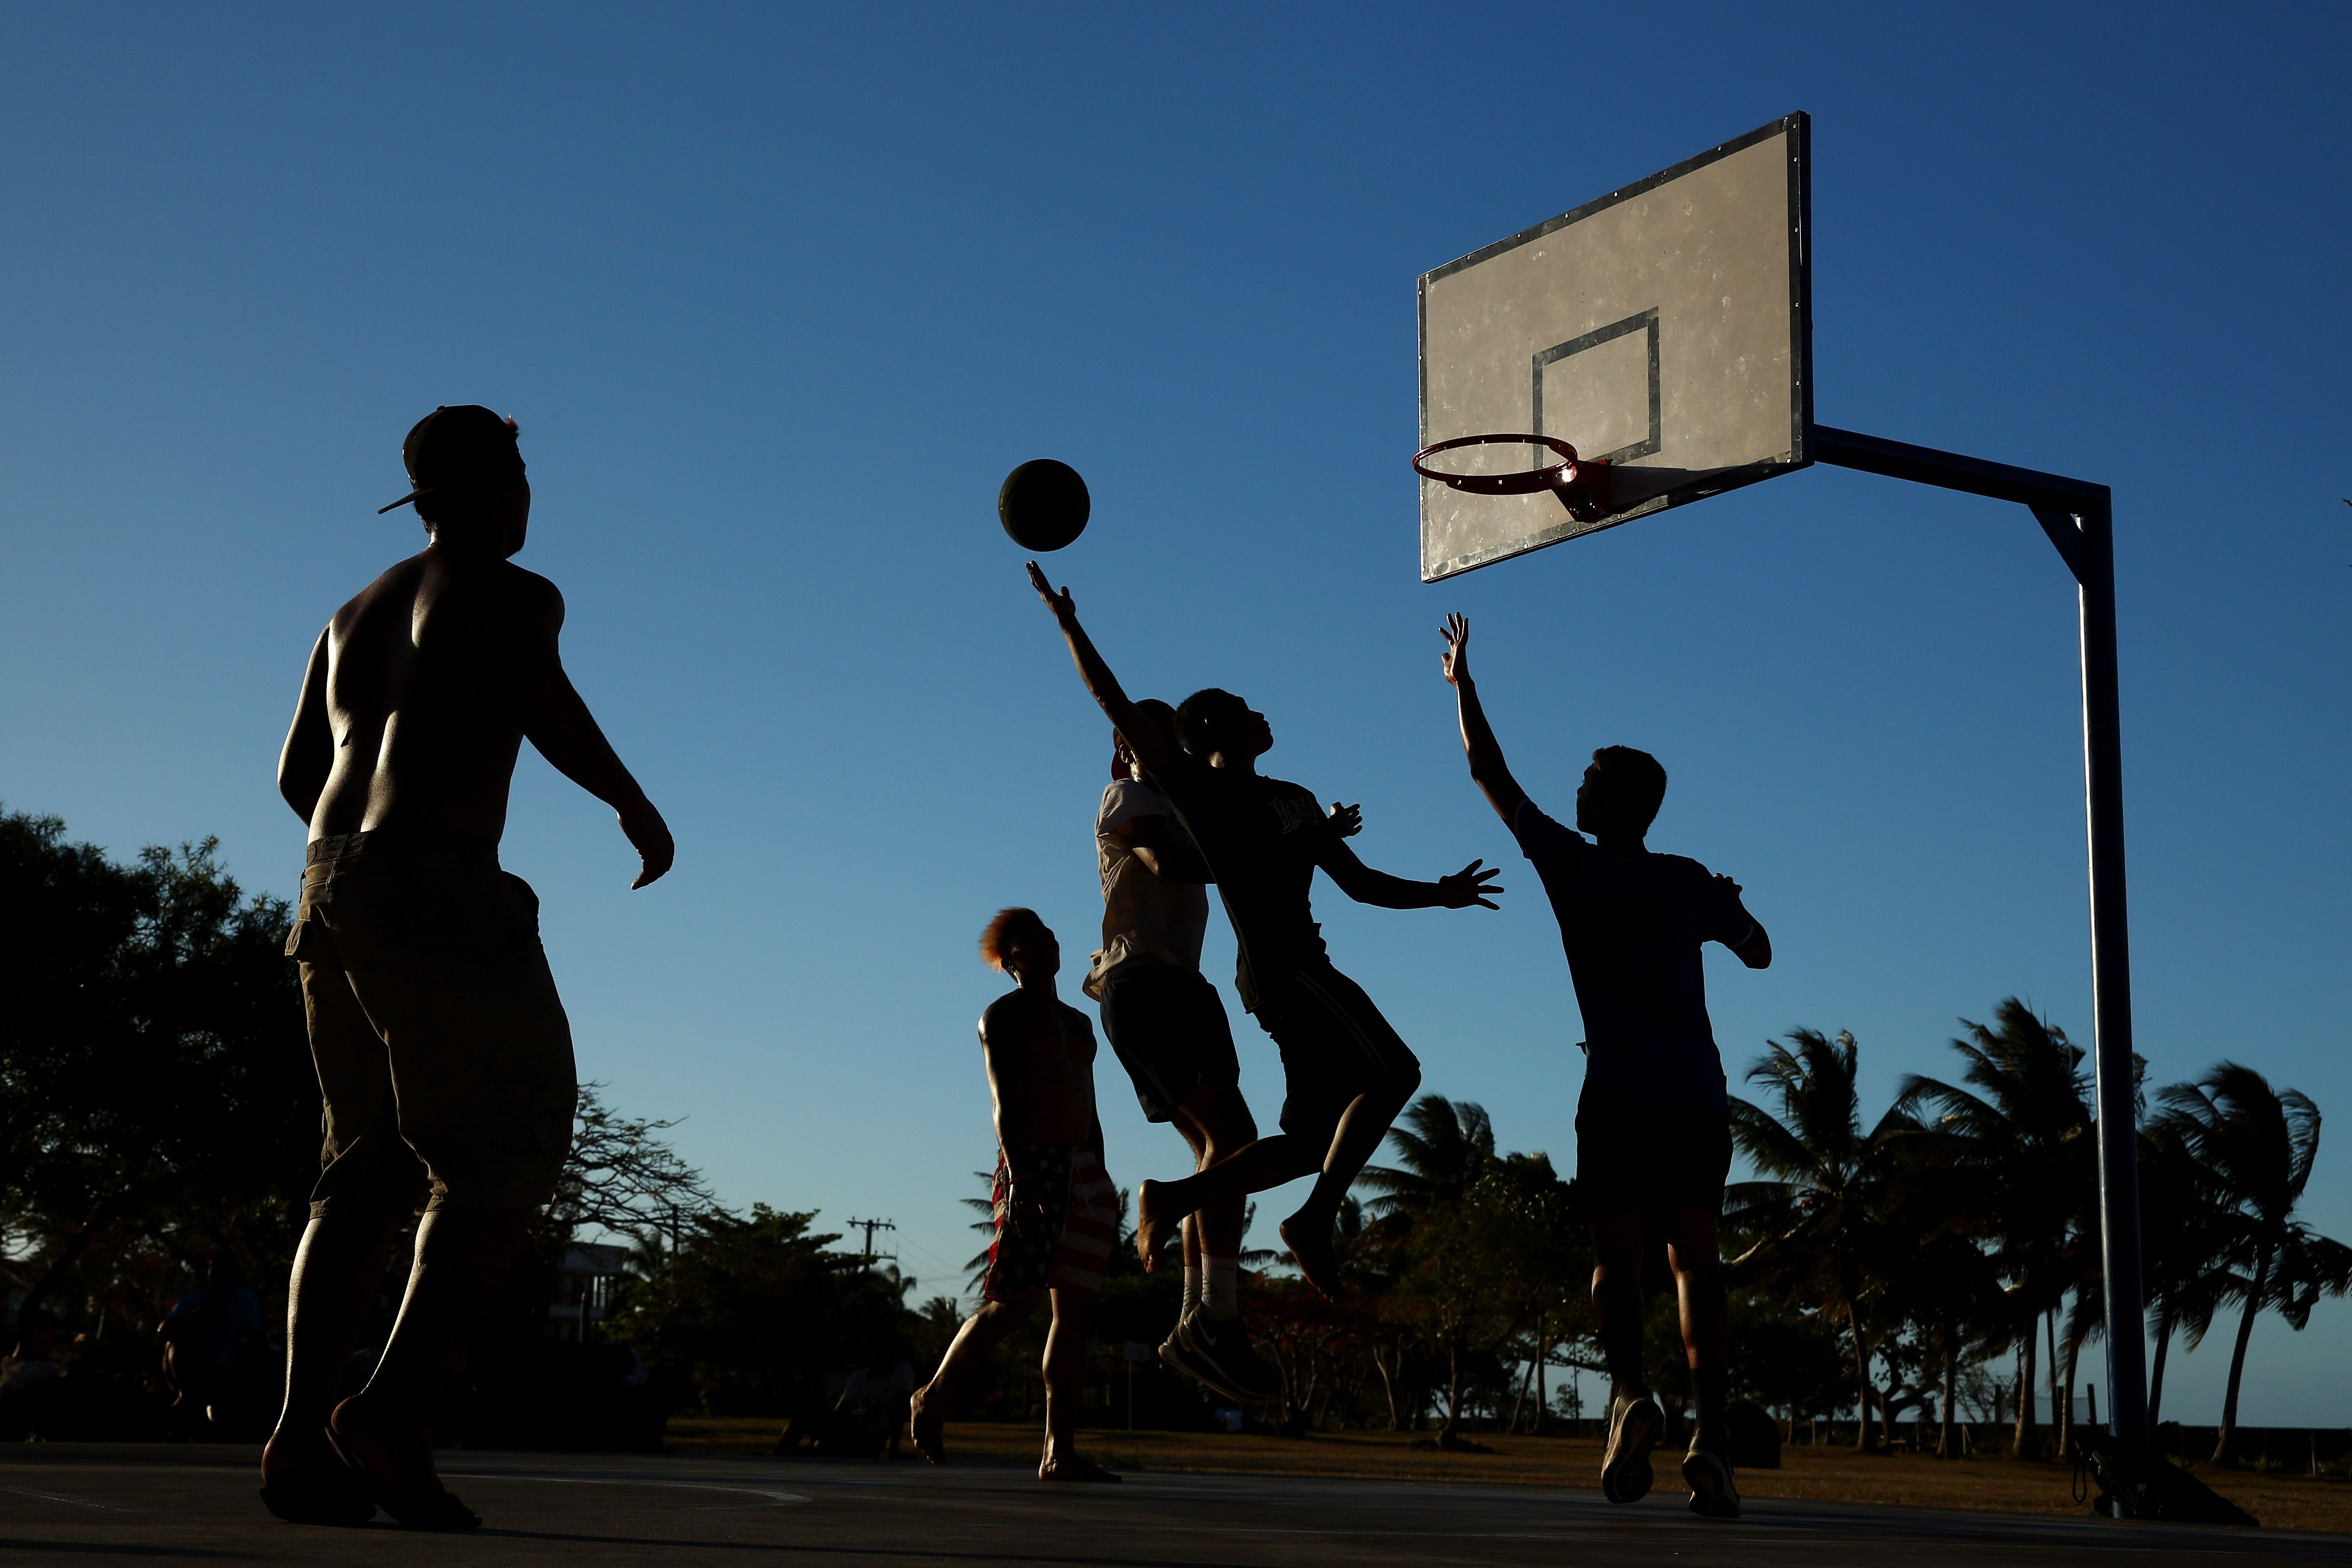 essay practicing basketball Basketball court miraculously the ball finds its way into the hoop, with 6 seconds left and the clock stopped writework contributors, descriptive essay : playing basketball, writeworkcom, https.